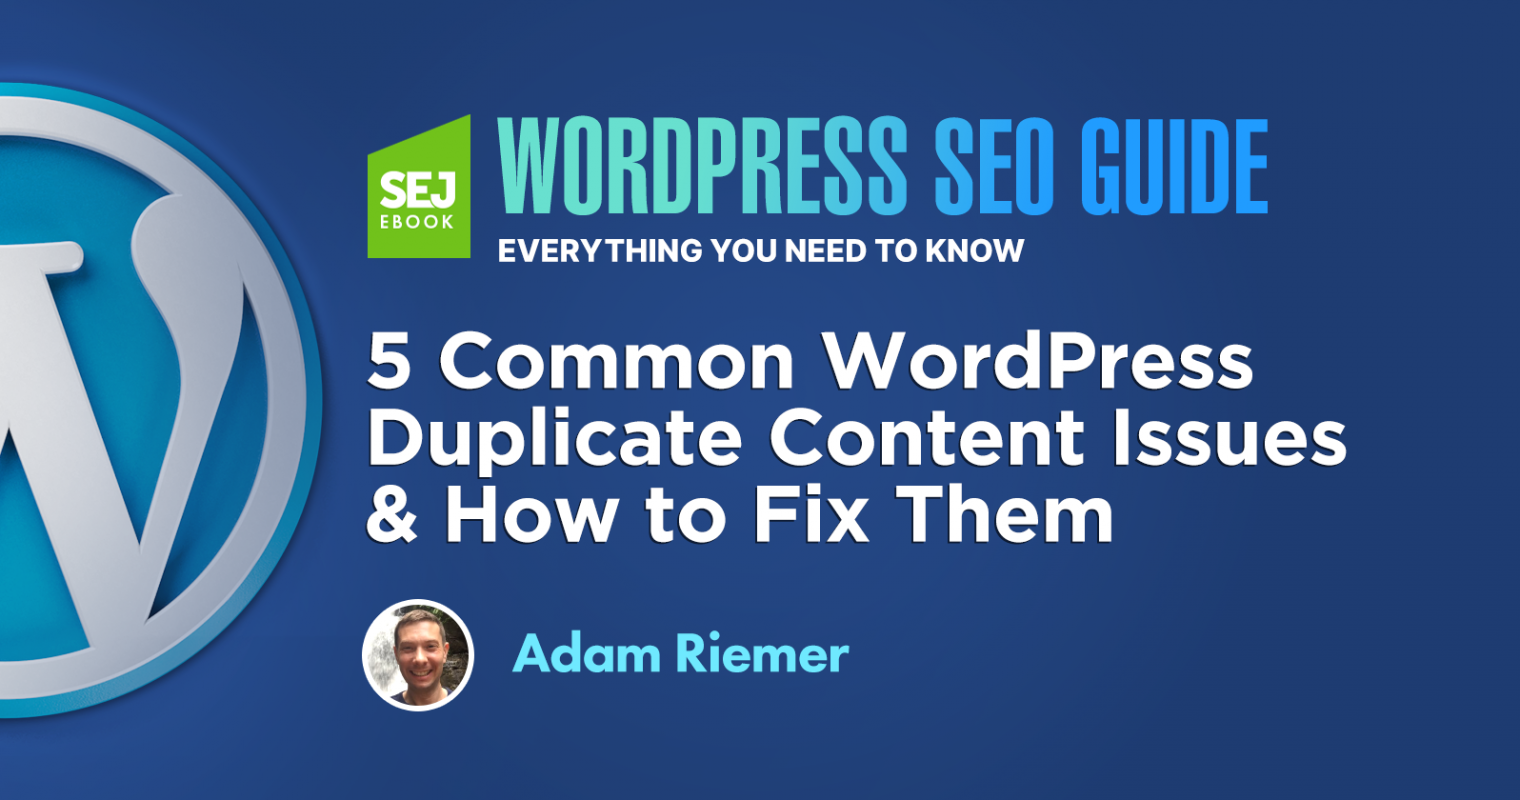 5 Common WordPress Duplicate Content Issues & How to Fix Them